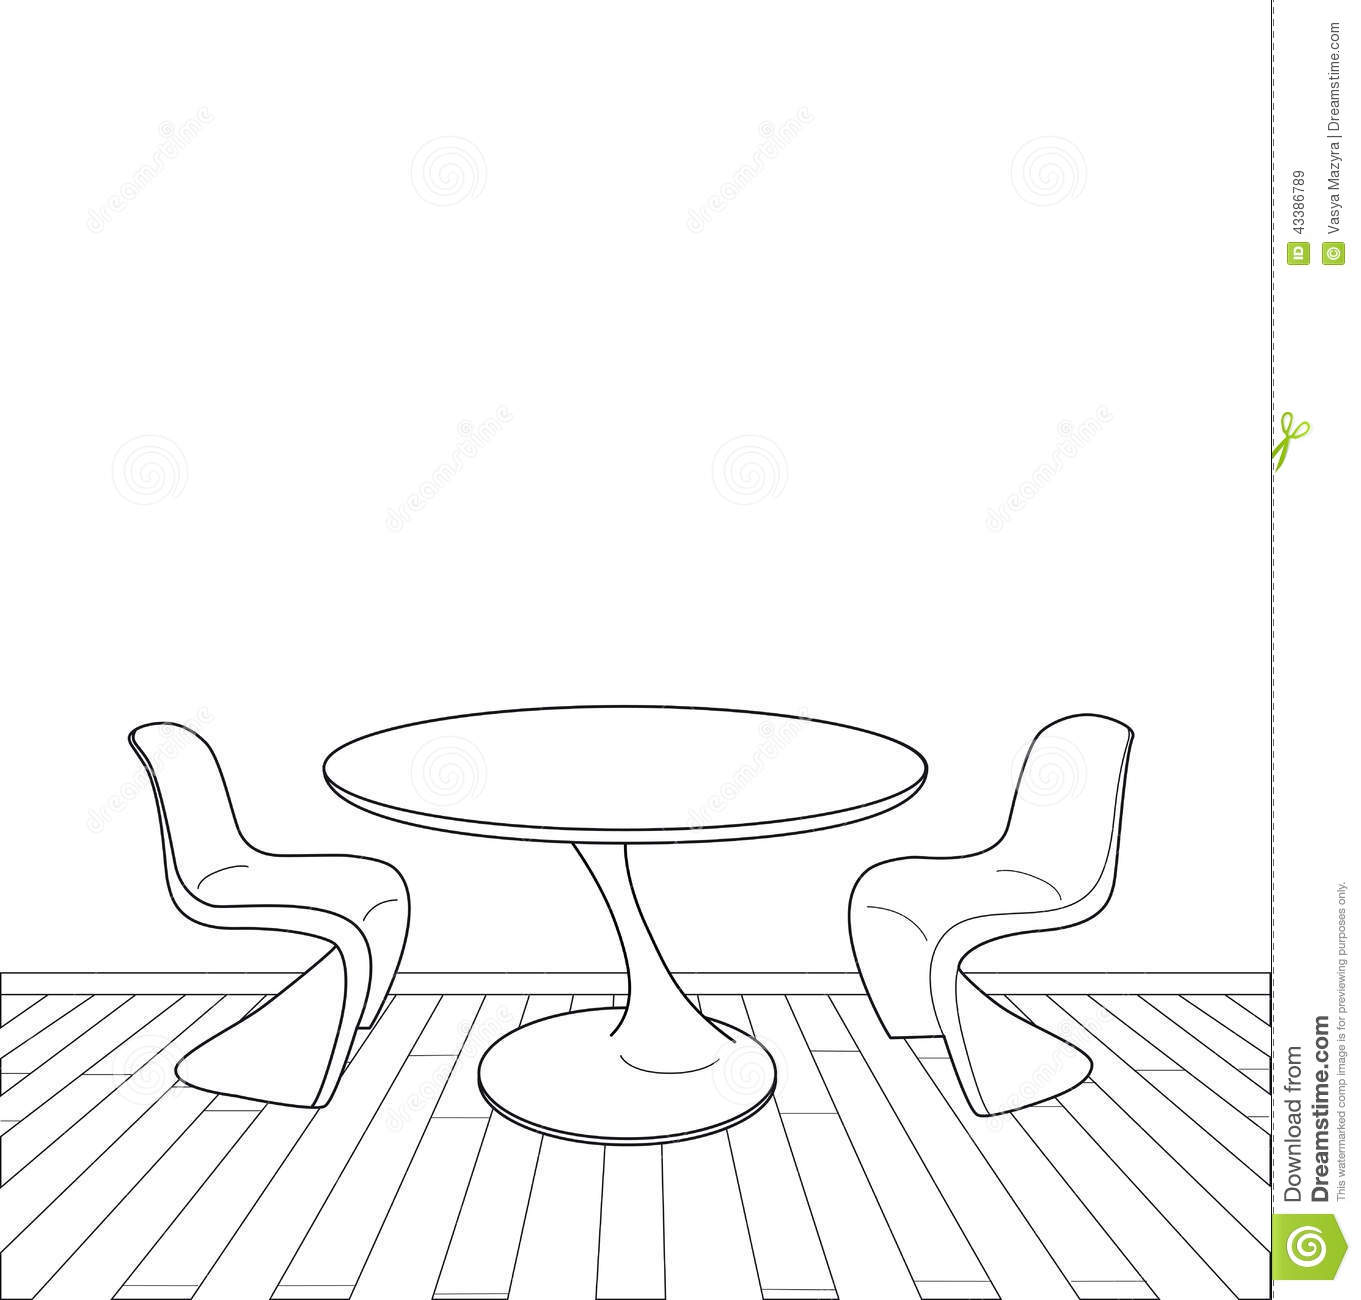 Modern furniture sketches chair sketches - Illustration Interior Modern Sketch